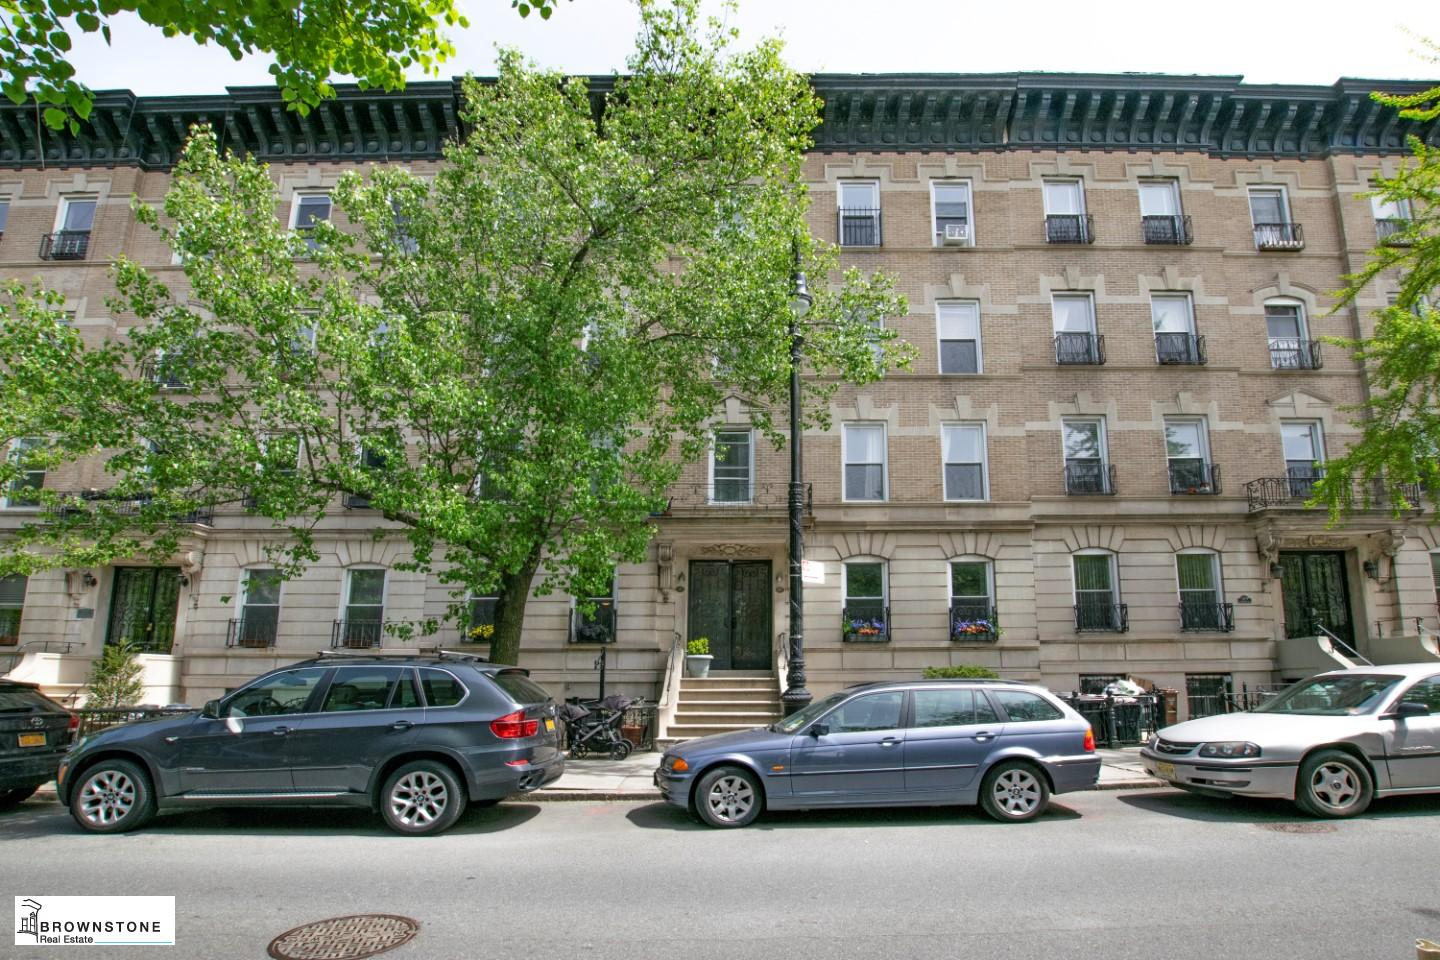 In the center of Brownstone Brooklyn in northern Carroll Gardens, 387 Clinton Street offers a sound investment opportunity, both financially and architecturally. The mammoth mixed-use structure is comprised of eight residential units, each with three or more bedrooms and two bathrooms. In addition to the residential units, there is also a legal medical office space (use group 4).The building is constructed using steel and masonry. Revitalized in the 1990s, 387 Clinton Street contains many modernized features, including electrical and plumbing, handicap access and central air for the medical space, and residential amenities (dishwashers and in-unit laundry). Prospective buyers can reap significant rewards by providing the units with contemporary finishes and marketing to the ever-growing luxury market in Carroll Gardens. Multi-bedroom units are a particularly sought-after commodity in the area due to their infrequent occurrence in traditional townhouses.On Clinton Street, between Union and Sackett Streets, a row of architecturally important homes lines the block. Unlike traditional townhouses, these distinct, steel-and-masonry-construction buildings are immense, offering sprawling apartments in multi-unit configurations. 387 Clinton Street is one of these attractive properties.)Situated in the northern section of Carroll Gardens, the property is one block from Historic Cobble Hill and two blocks from the Columbia Street Waterfront District. From those areas, Brooklyn Bridge Park, the Brooklyn Promenade, both the Brooklyn and Manhattan Bridges, and the ever-trendy Brooklyn Heights and DUMBO are all within reach. As a neighborhood of its own, Carroll Gardens has a distinct feeling of community and a rich local culture, with many high-end boutique retailers and artisans, gourmet dining establishments, and numerous education options for  people of all ages.As is, the property is a strong investment. Envisioning how a maximization-oriented owner could enhance the investment is easy. Carroll Gardens is an ideal place for high-end rentals and luxury condominium units, and the building needs only minimal finish work to fully capture that market. The community space in the basement and spectacular roof vistas provide opportunities to expand income and enrich the buildings amenities.